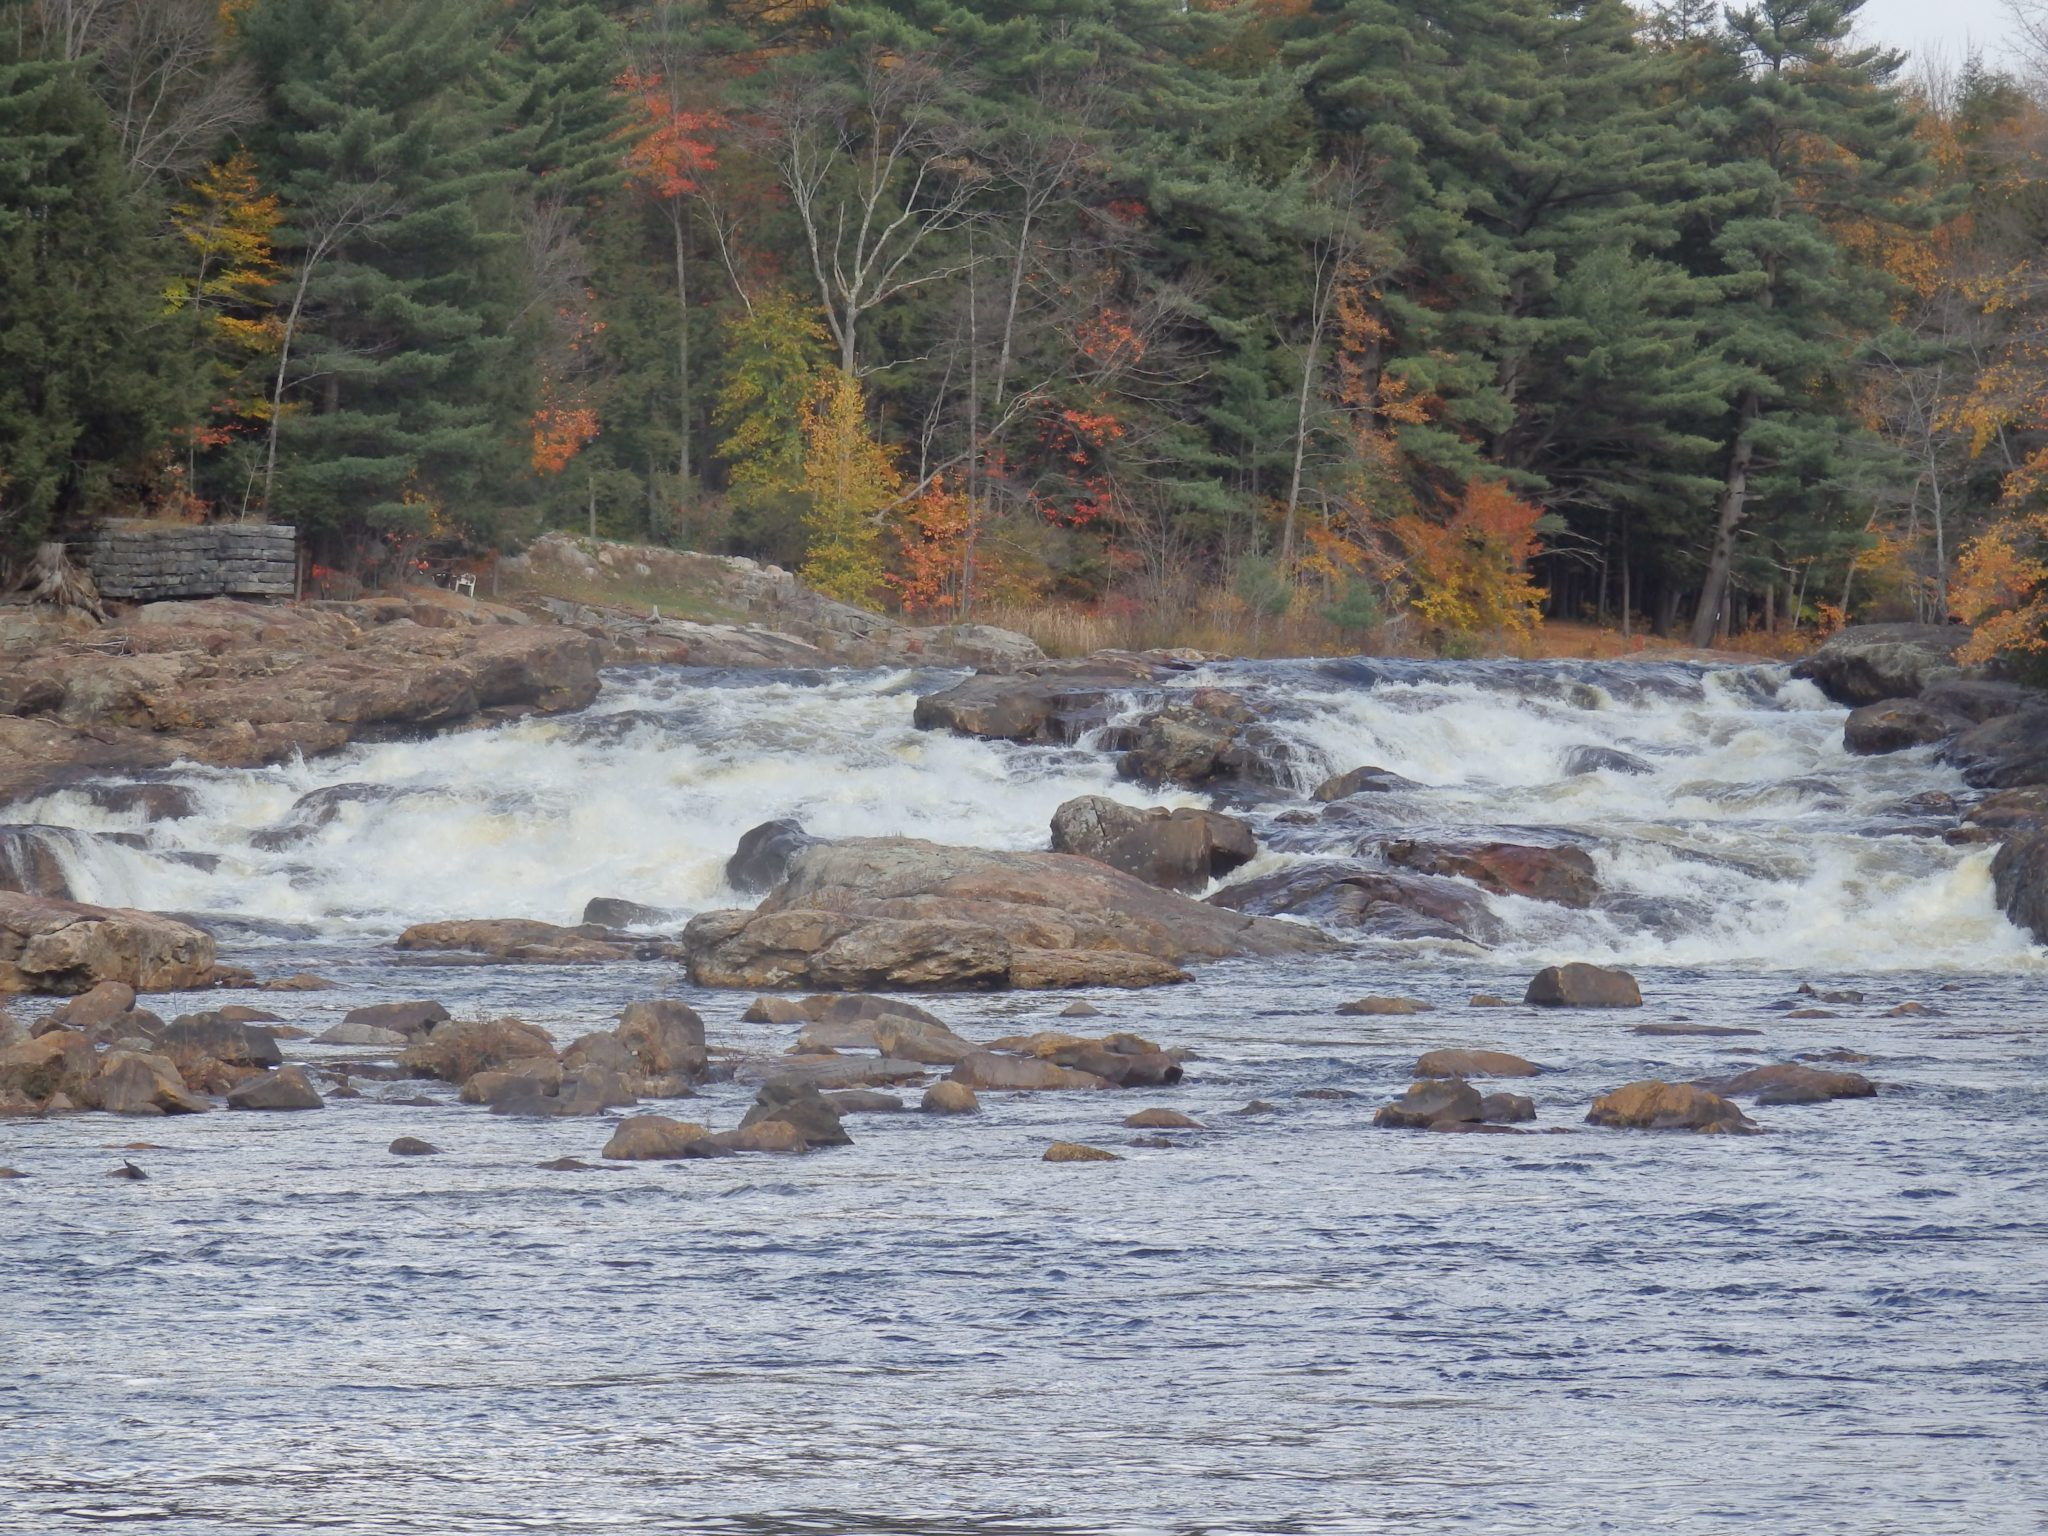 Shoemakers Falls – Cooperstown, Otsego